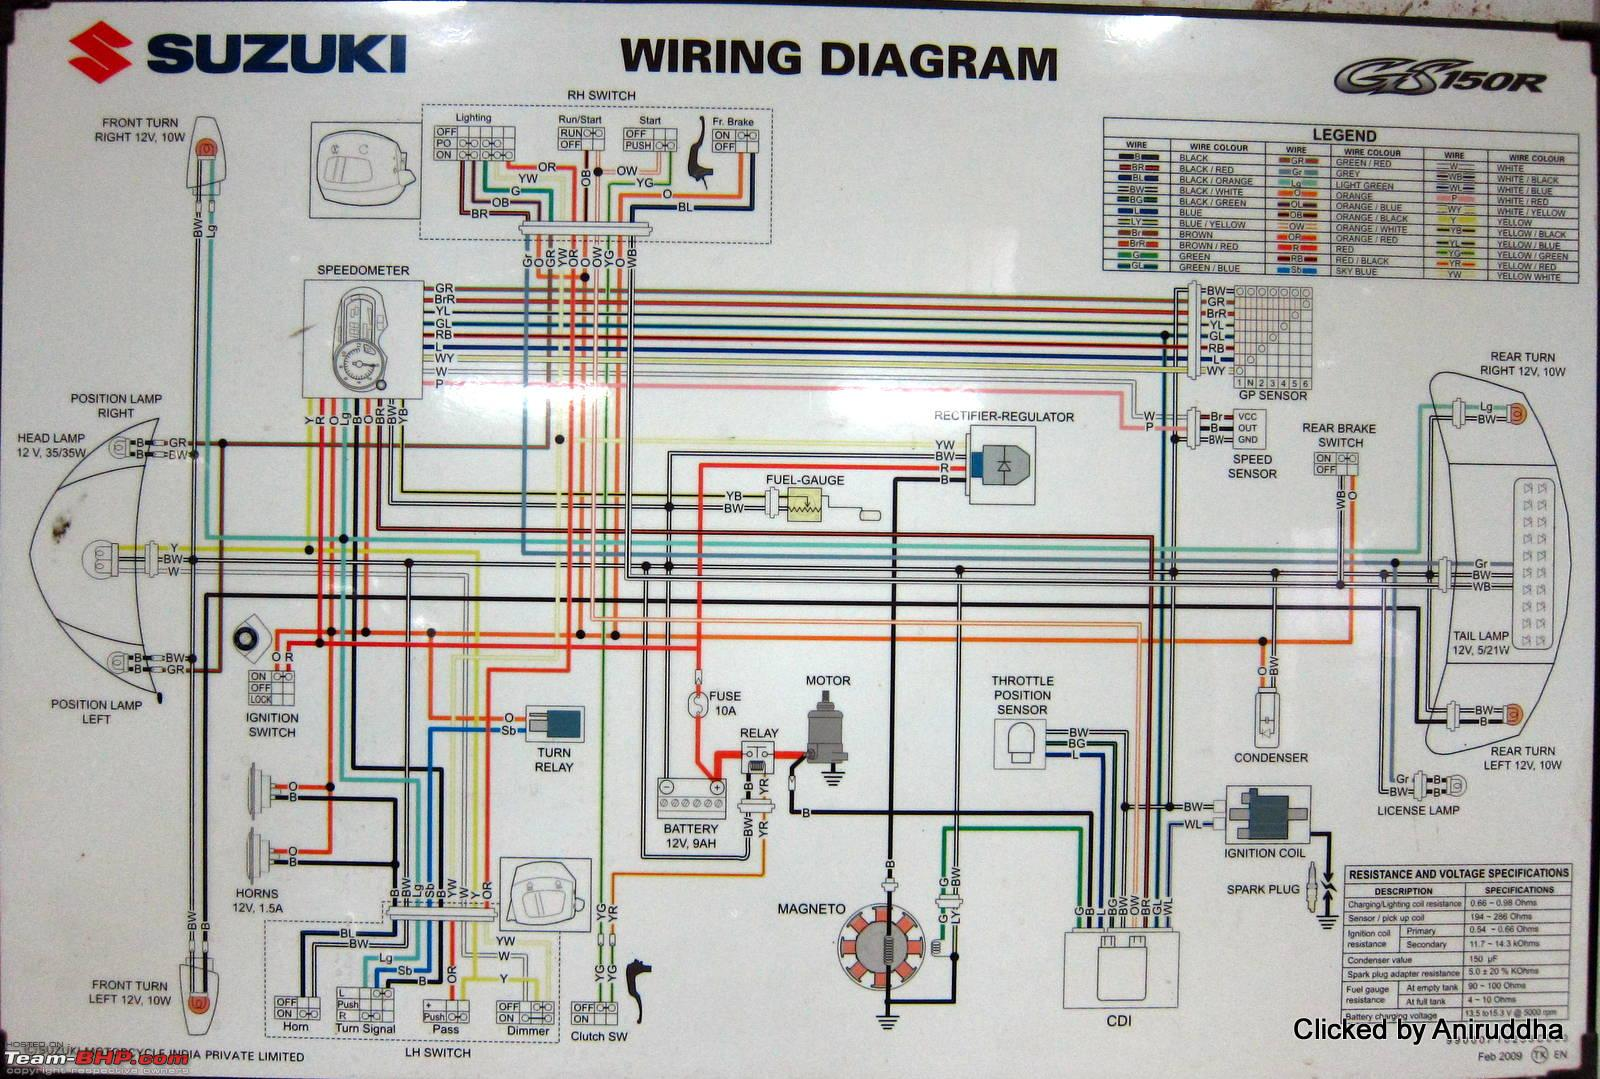 887402d1329132985 circuit diagrams indian motorcycles scooters img_0717 circuit diagrams of indian motorcycles and scooters team bhp on hero honda splendor engine diagram wiring